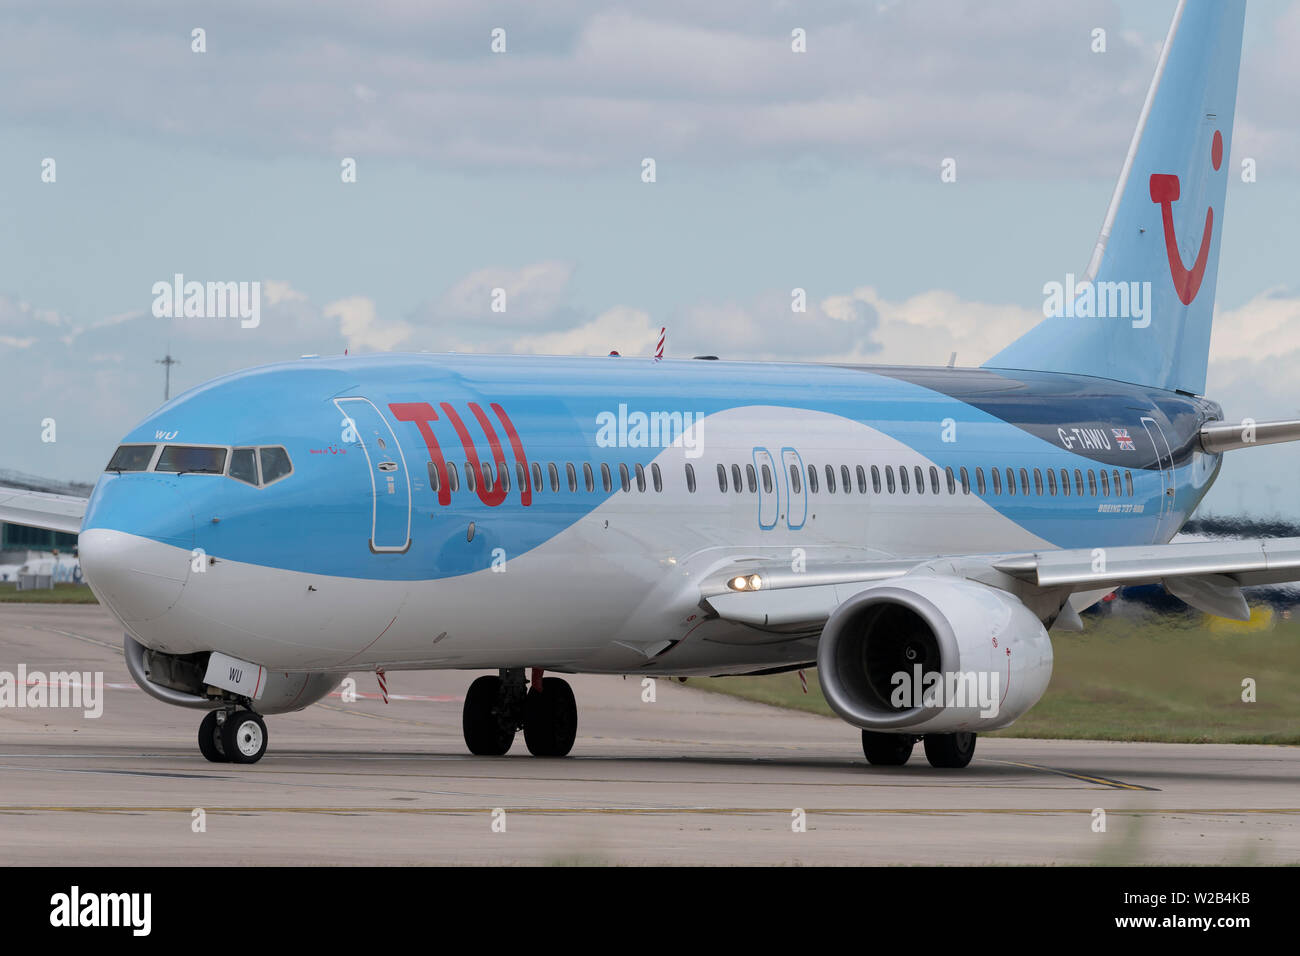 A TUI Boeing 737-800 taxis on the runway at Manchester Airport, UK. - Stock Image